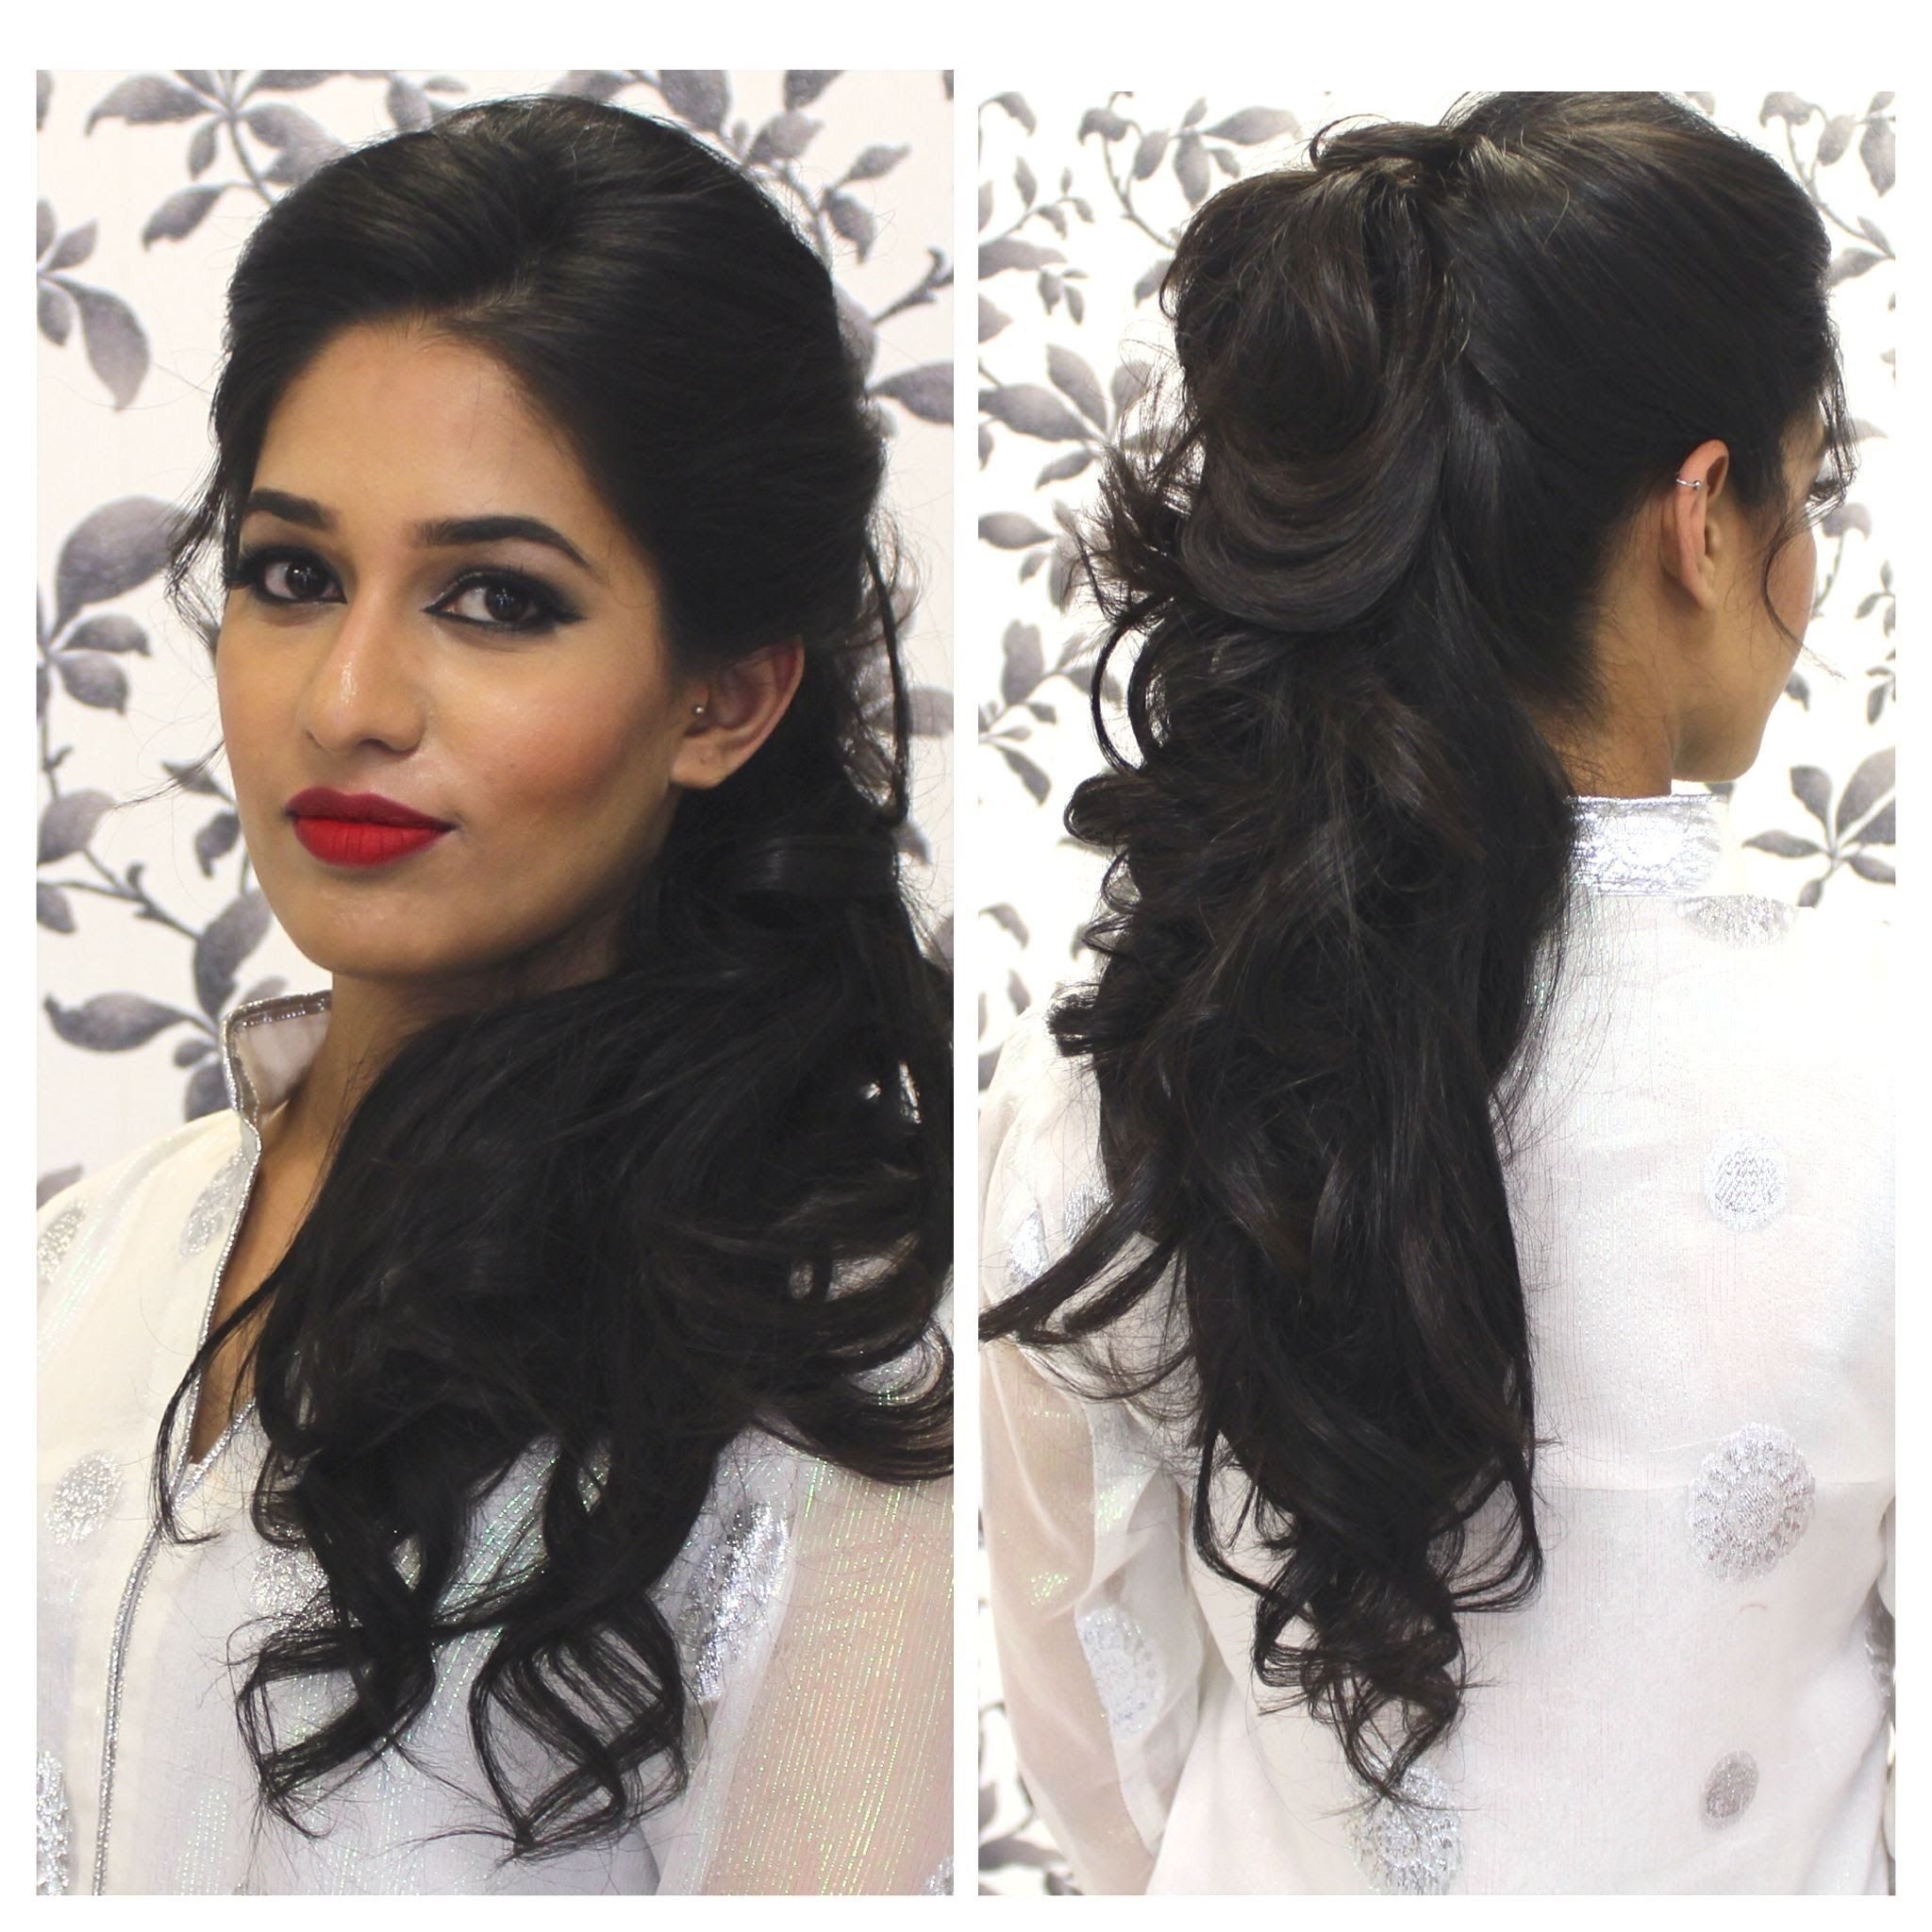 Hairstyles For Curly Hair Indian | Hairstyles For Curly Hair for Indian Curly Hair Hairstyles